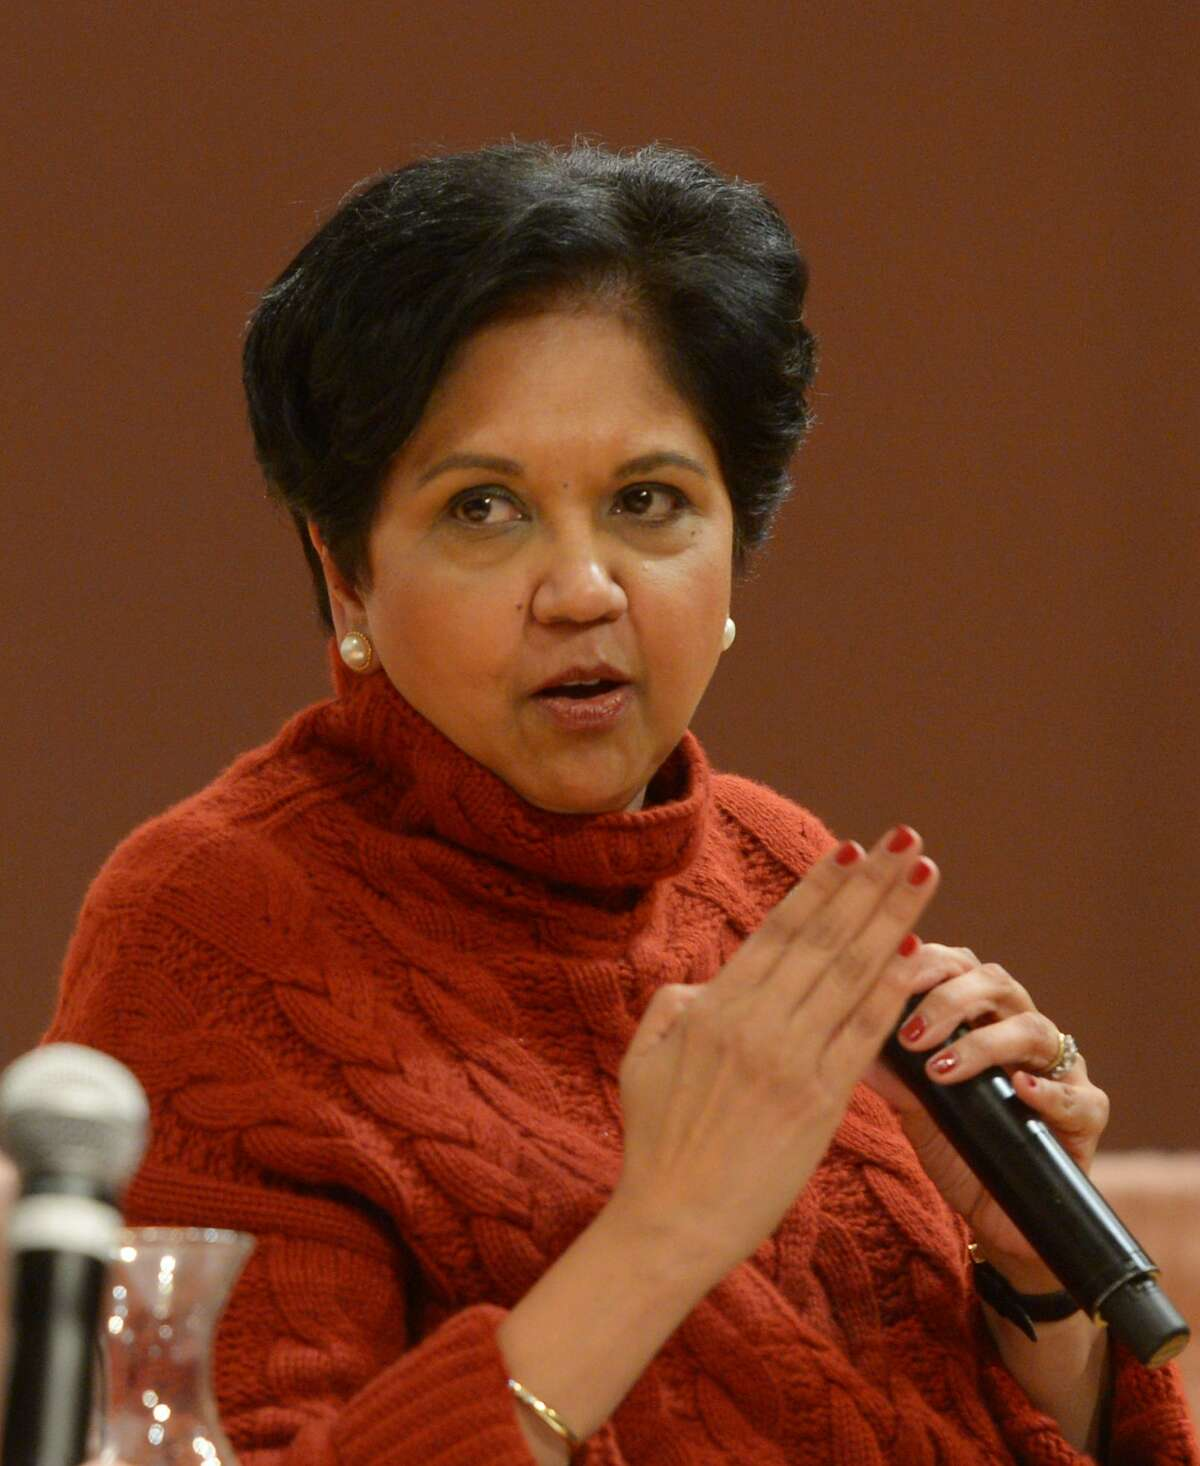 The Greenwich Historical Society will honor Indra K. Nooyi, former chairman and CEO of PepsiCo, with its History in the Making Award at a reception and lecture on Wednesday evening at the Round Hill Club. For tickets, visit greenwichhistory.org or call 203-869-6899, Ext. 13.